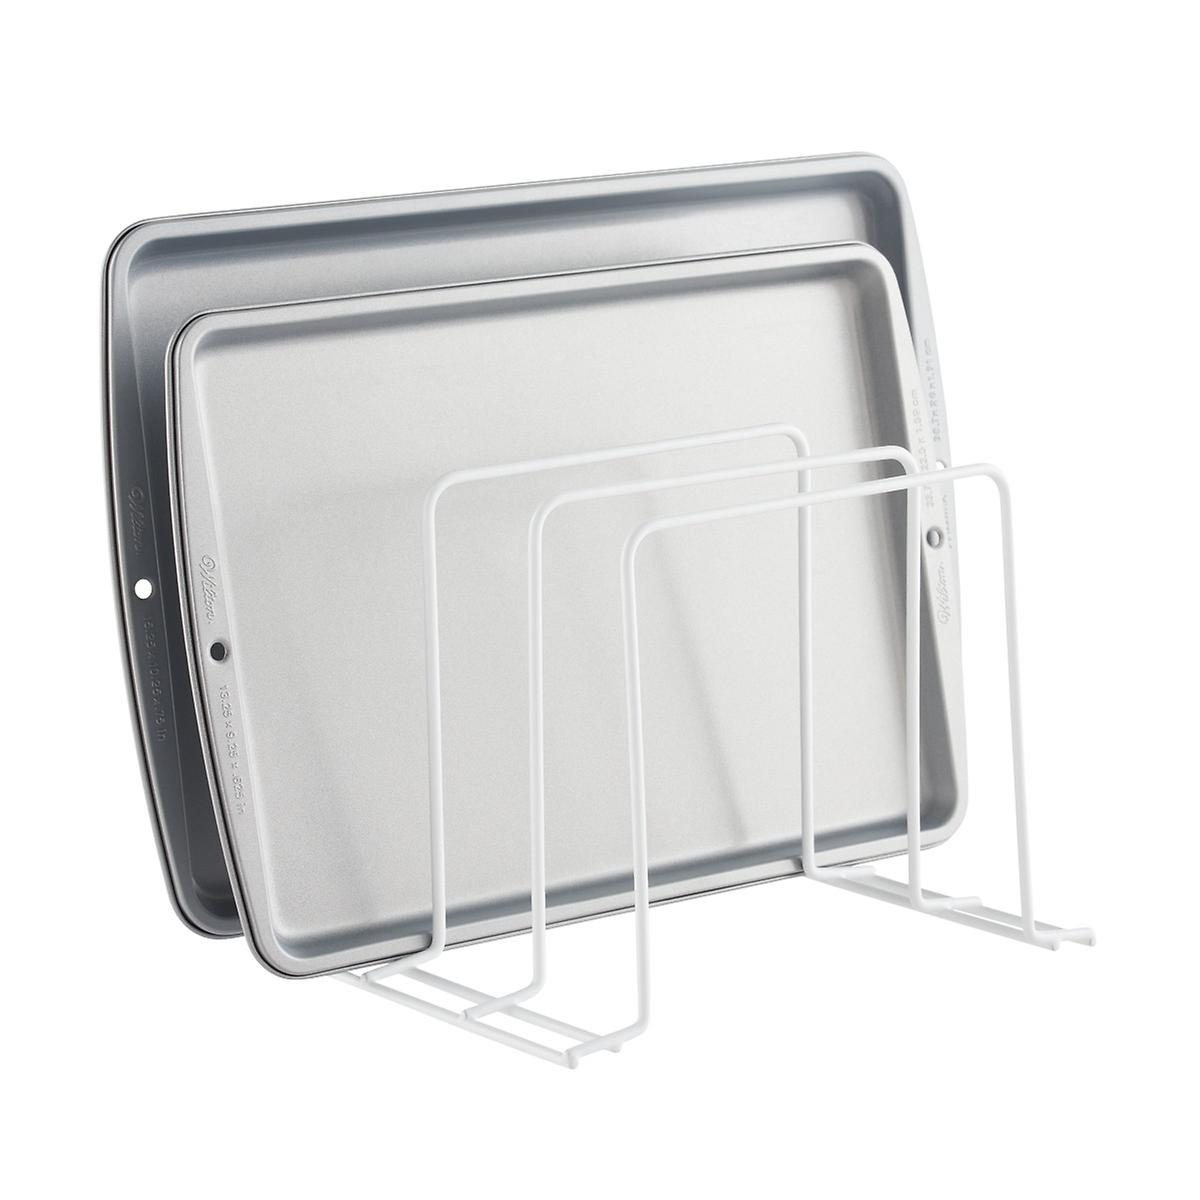 rack for holding baking pans